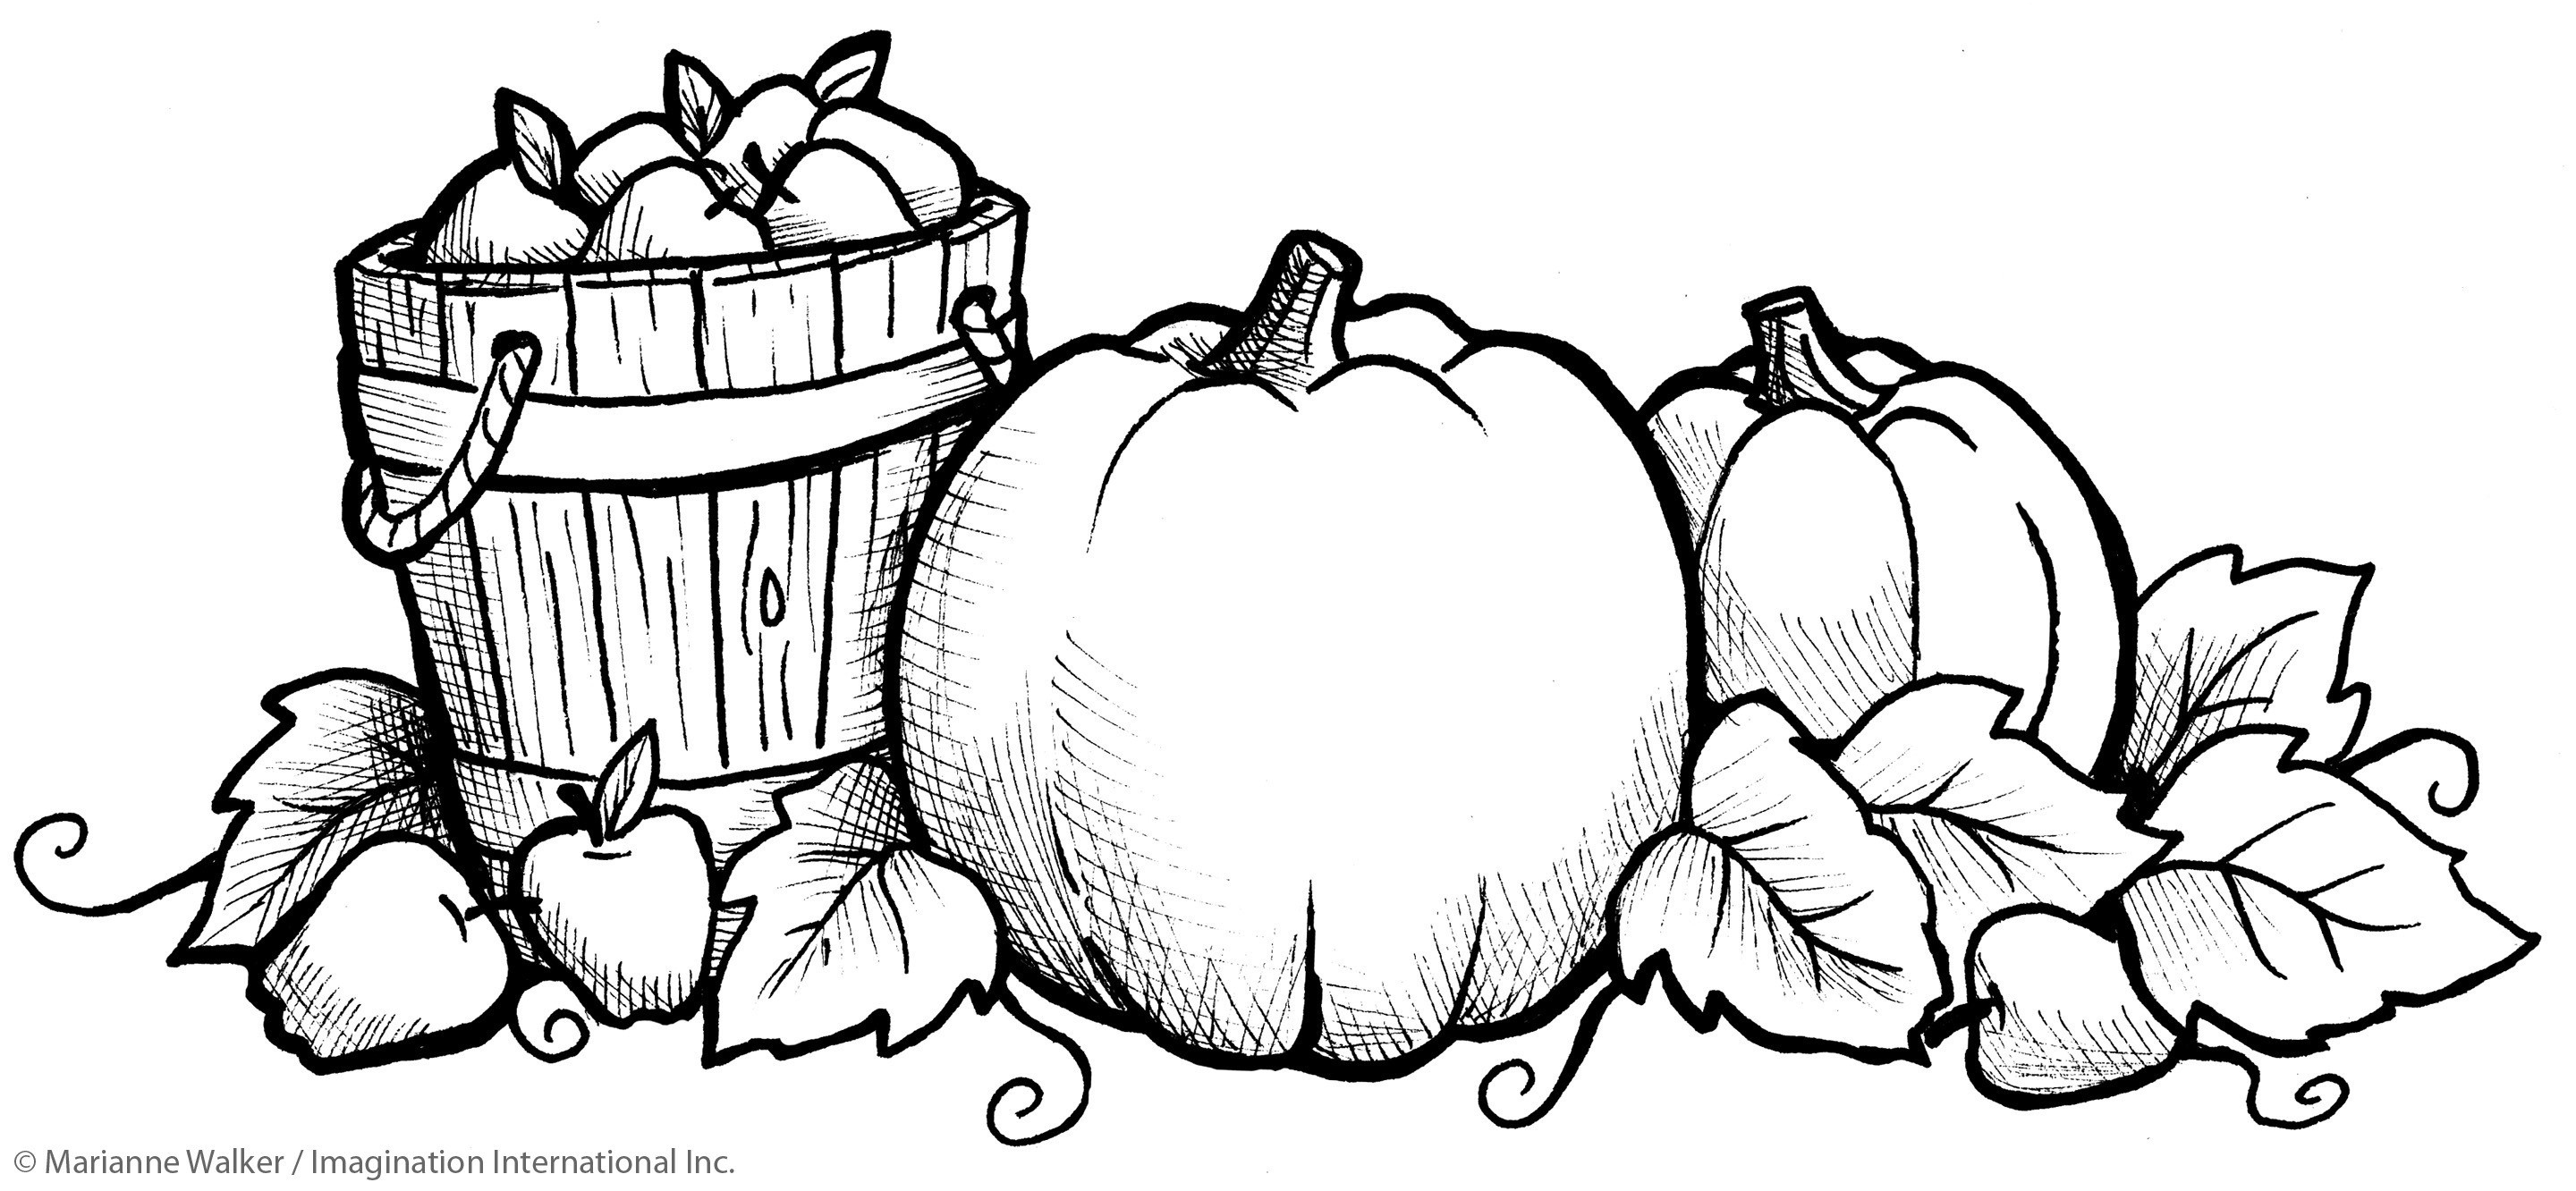 Free Printable Fall Harvest Coloring Pages - Free Printable Fall Harvest Coloring Pages